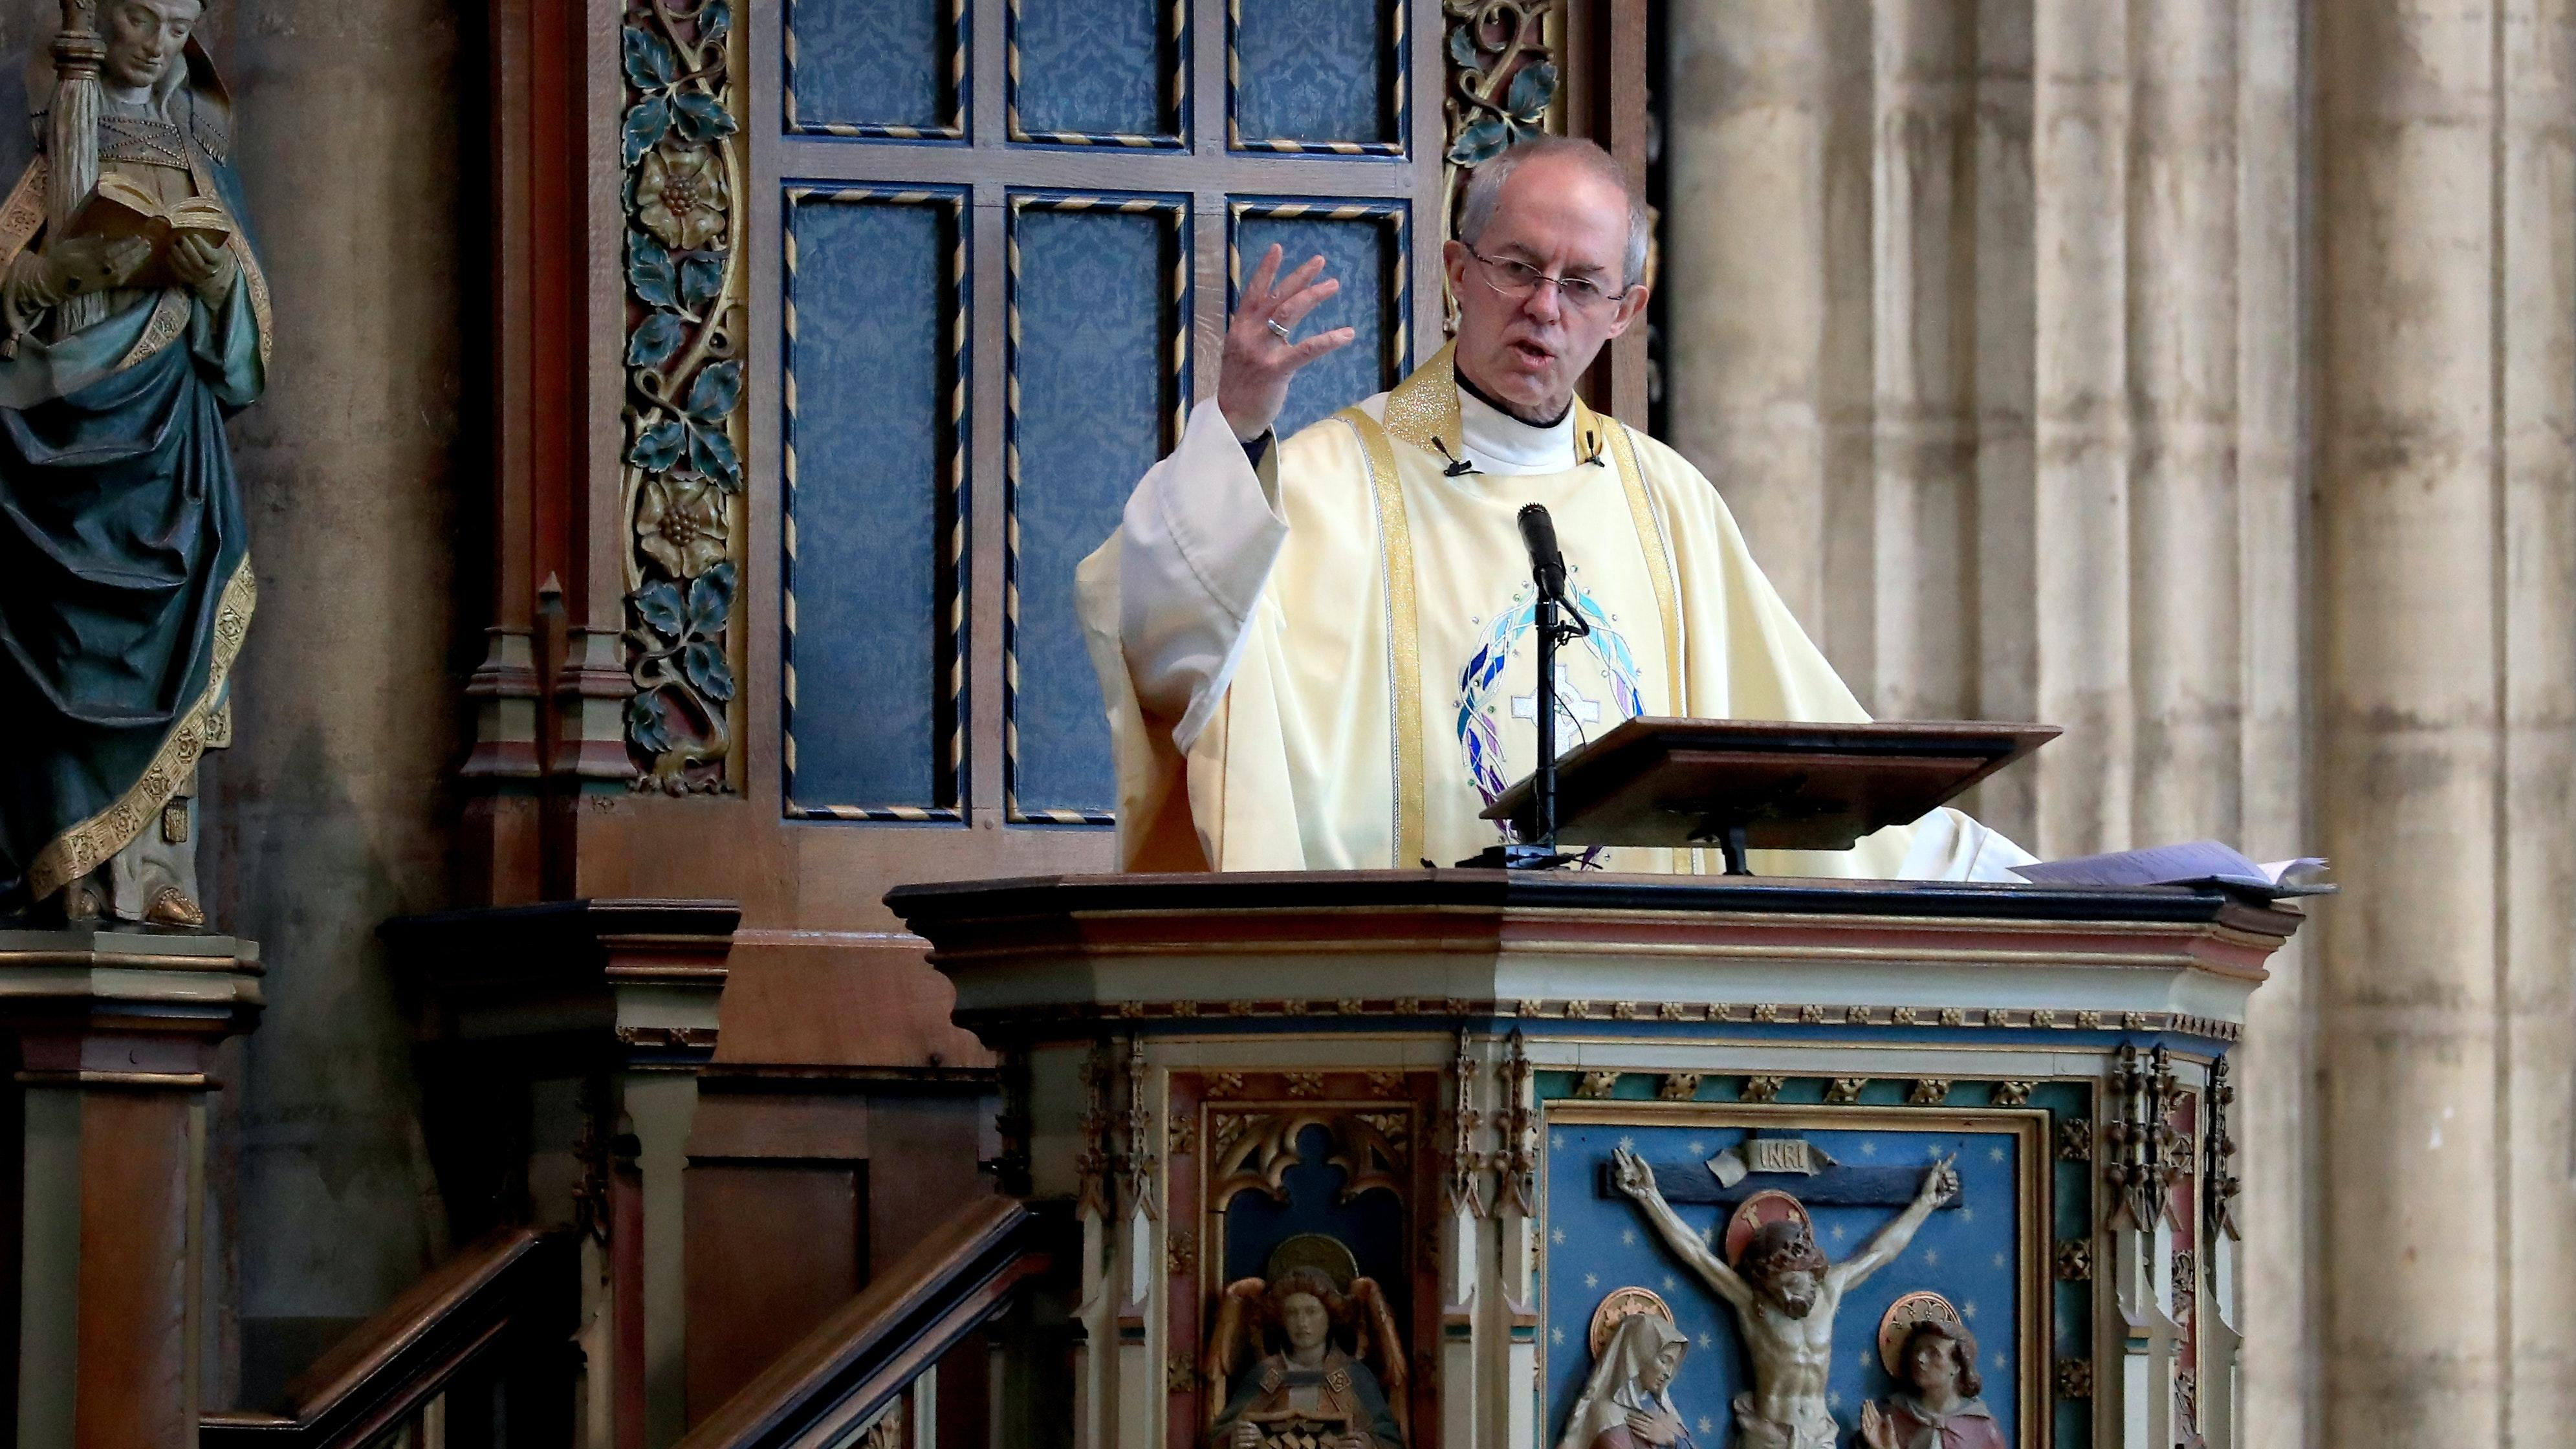 Archbishop of Canterbury: Church services ban will probably change